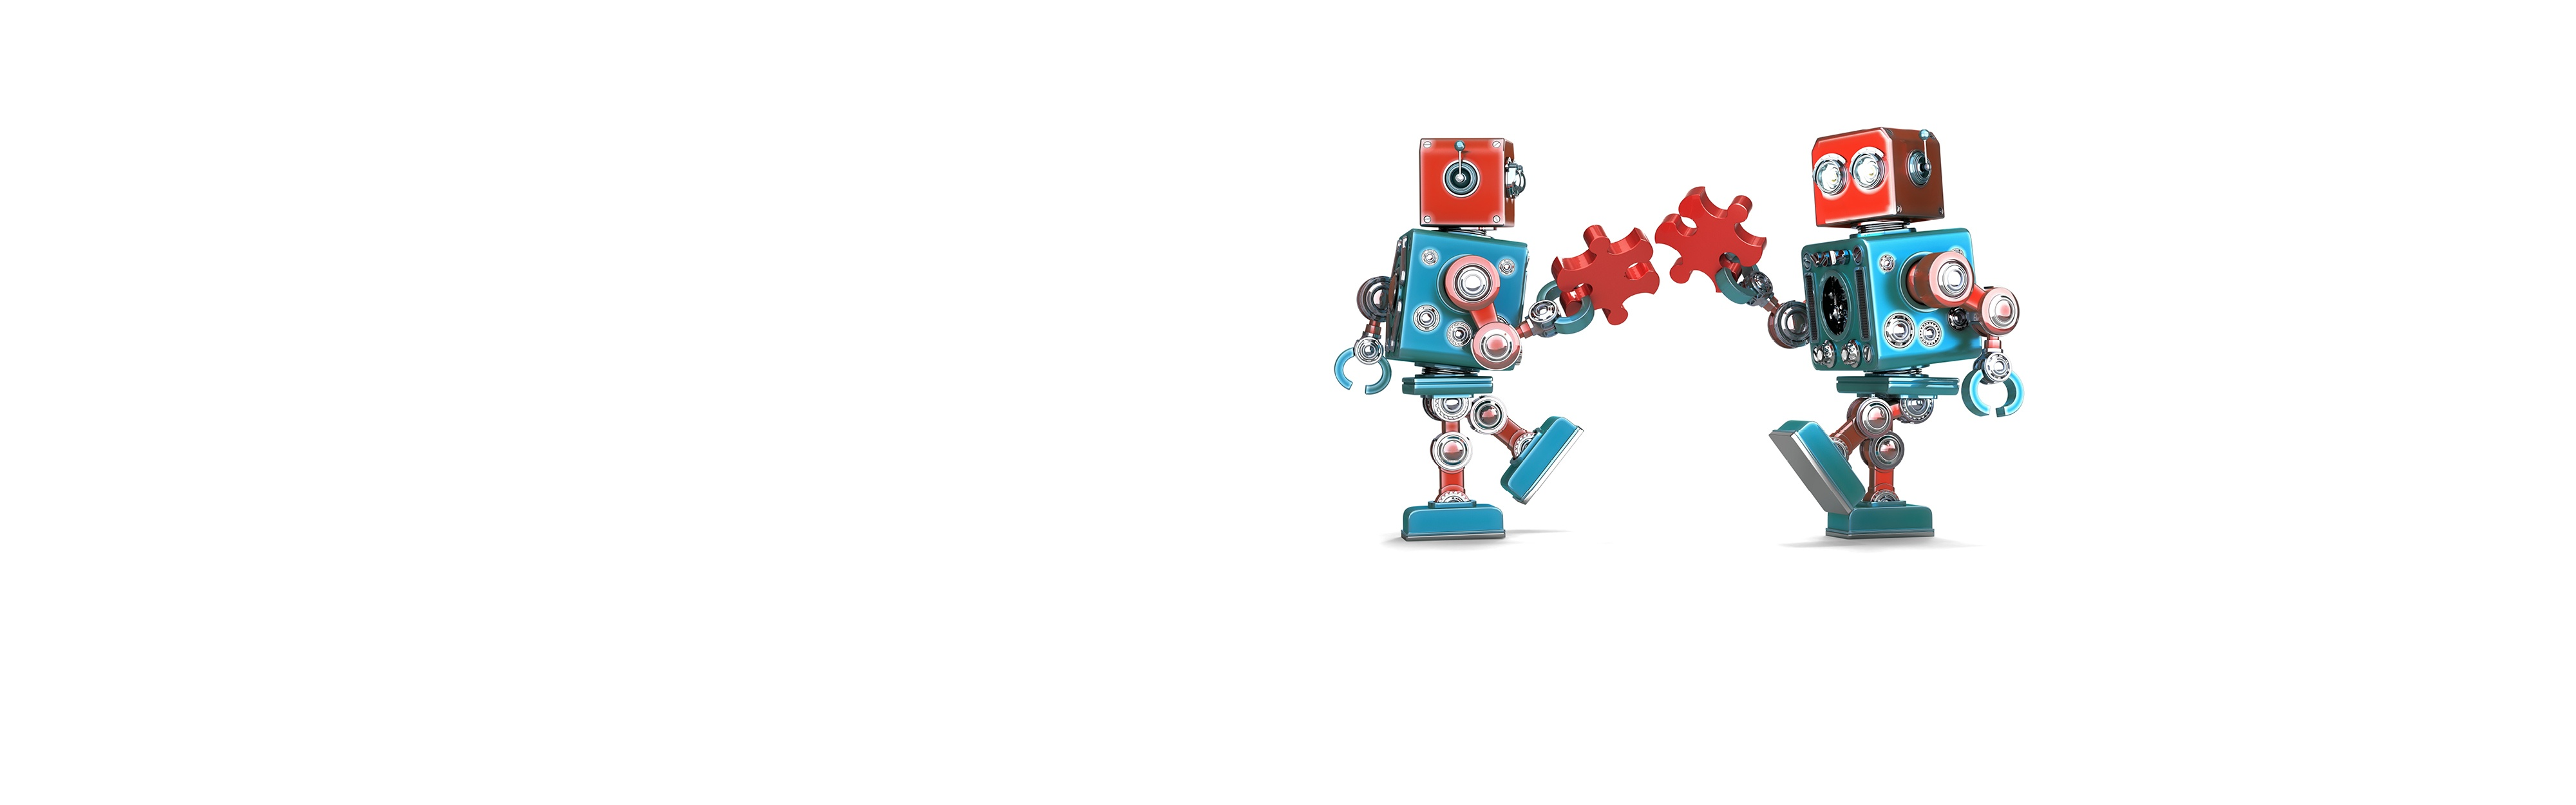 Automation Banner 1920 x 600